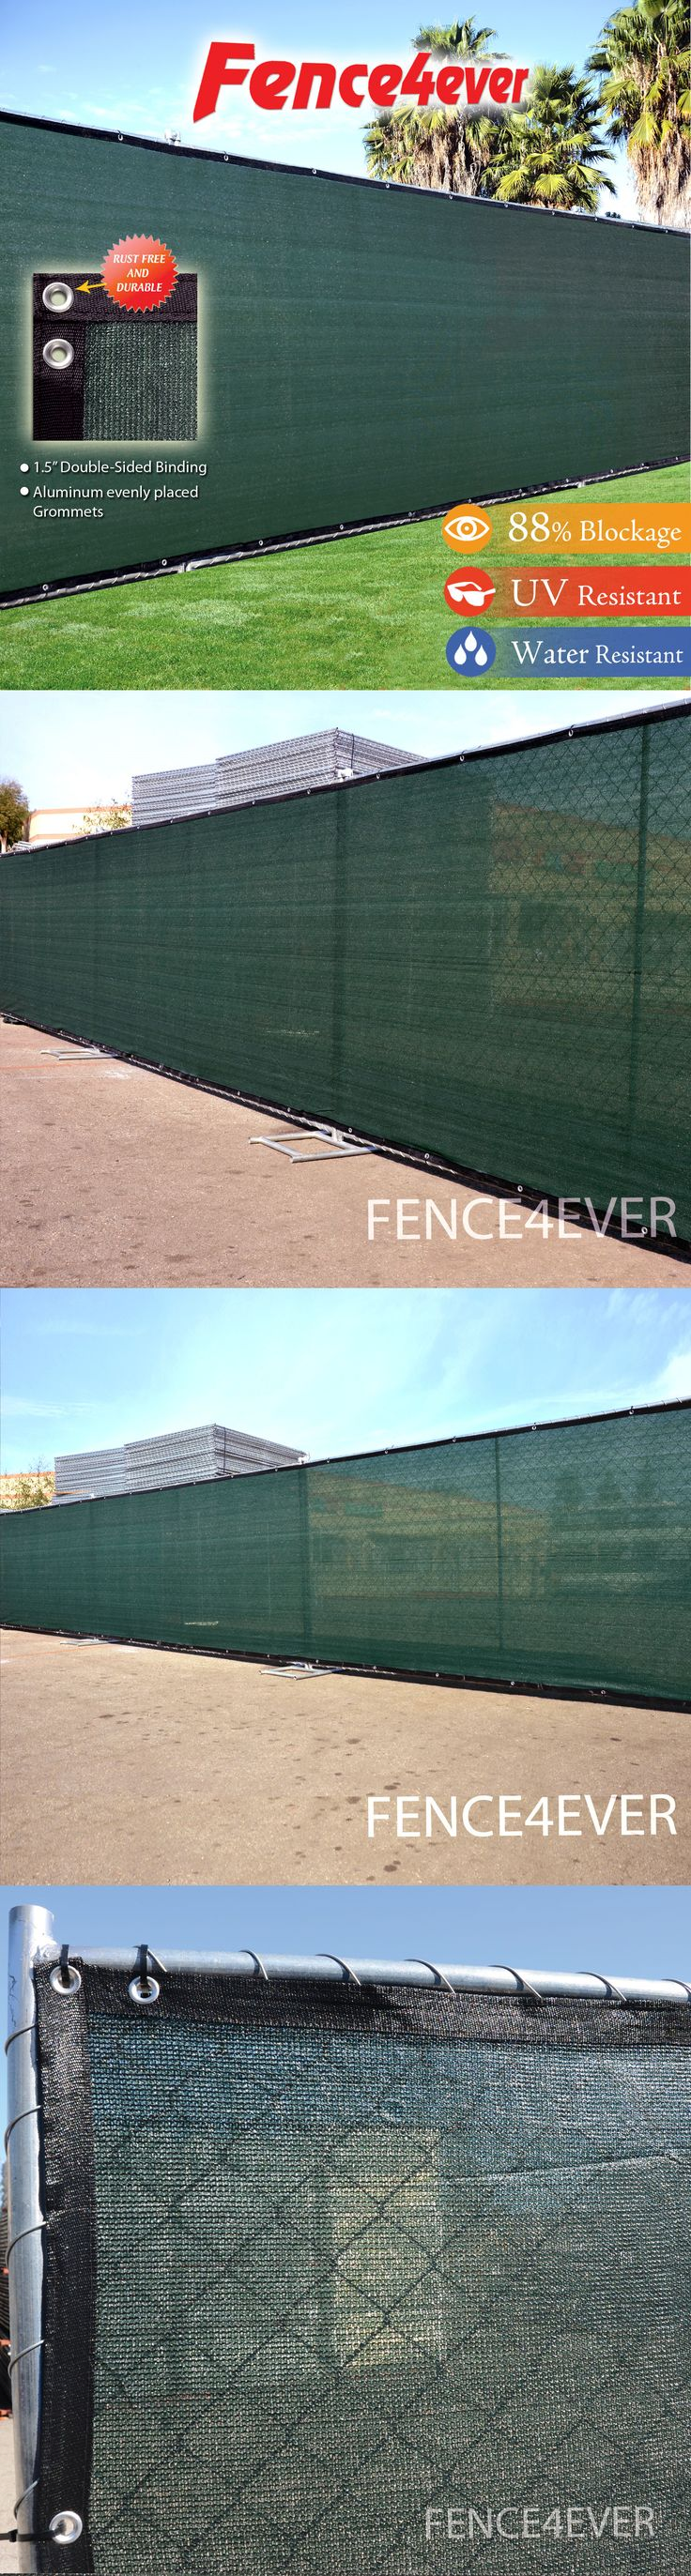 Privacy screen for chain link fence ebay - Privacy Screens Windscreens 180991 Green 6 X25 Fence Windscreen Privacy Screen Shade Fabric Cover Mesh